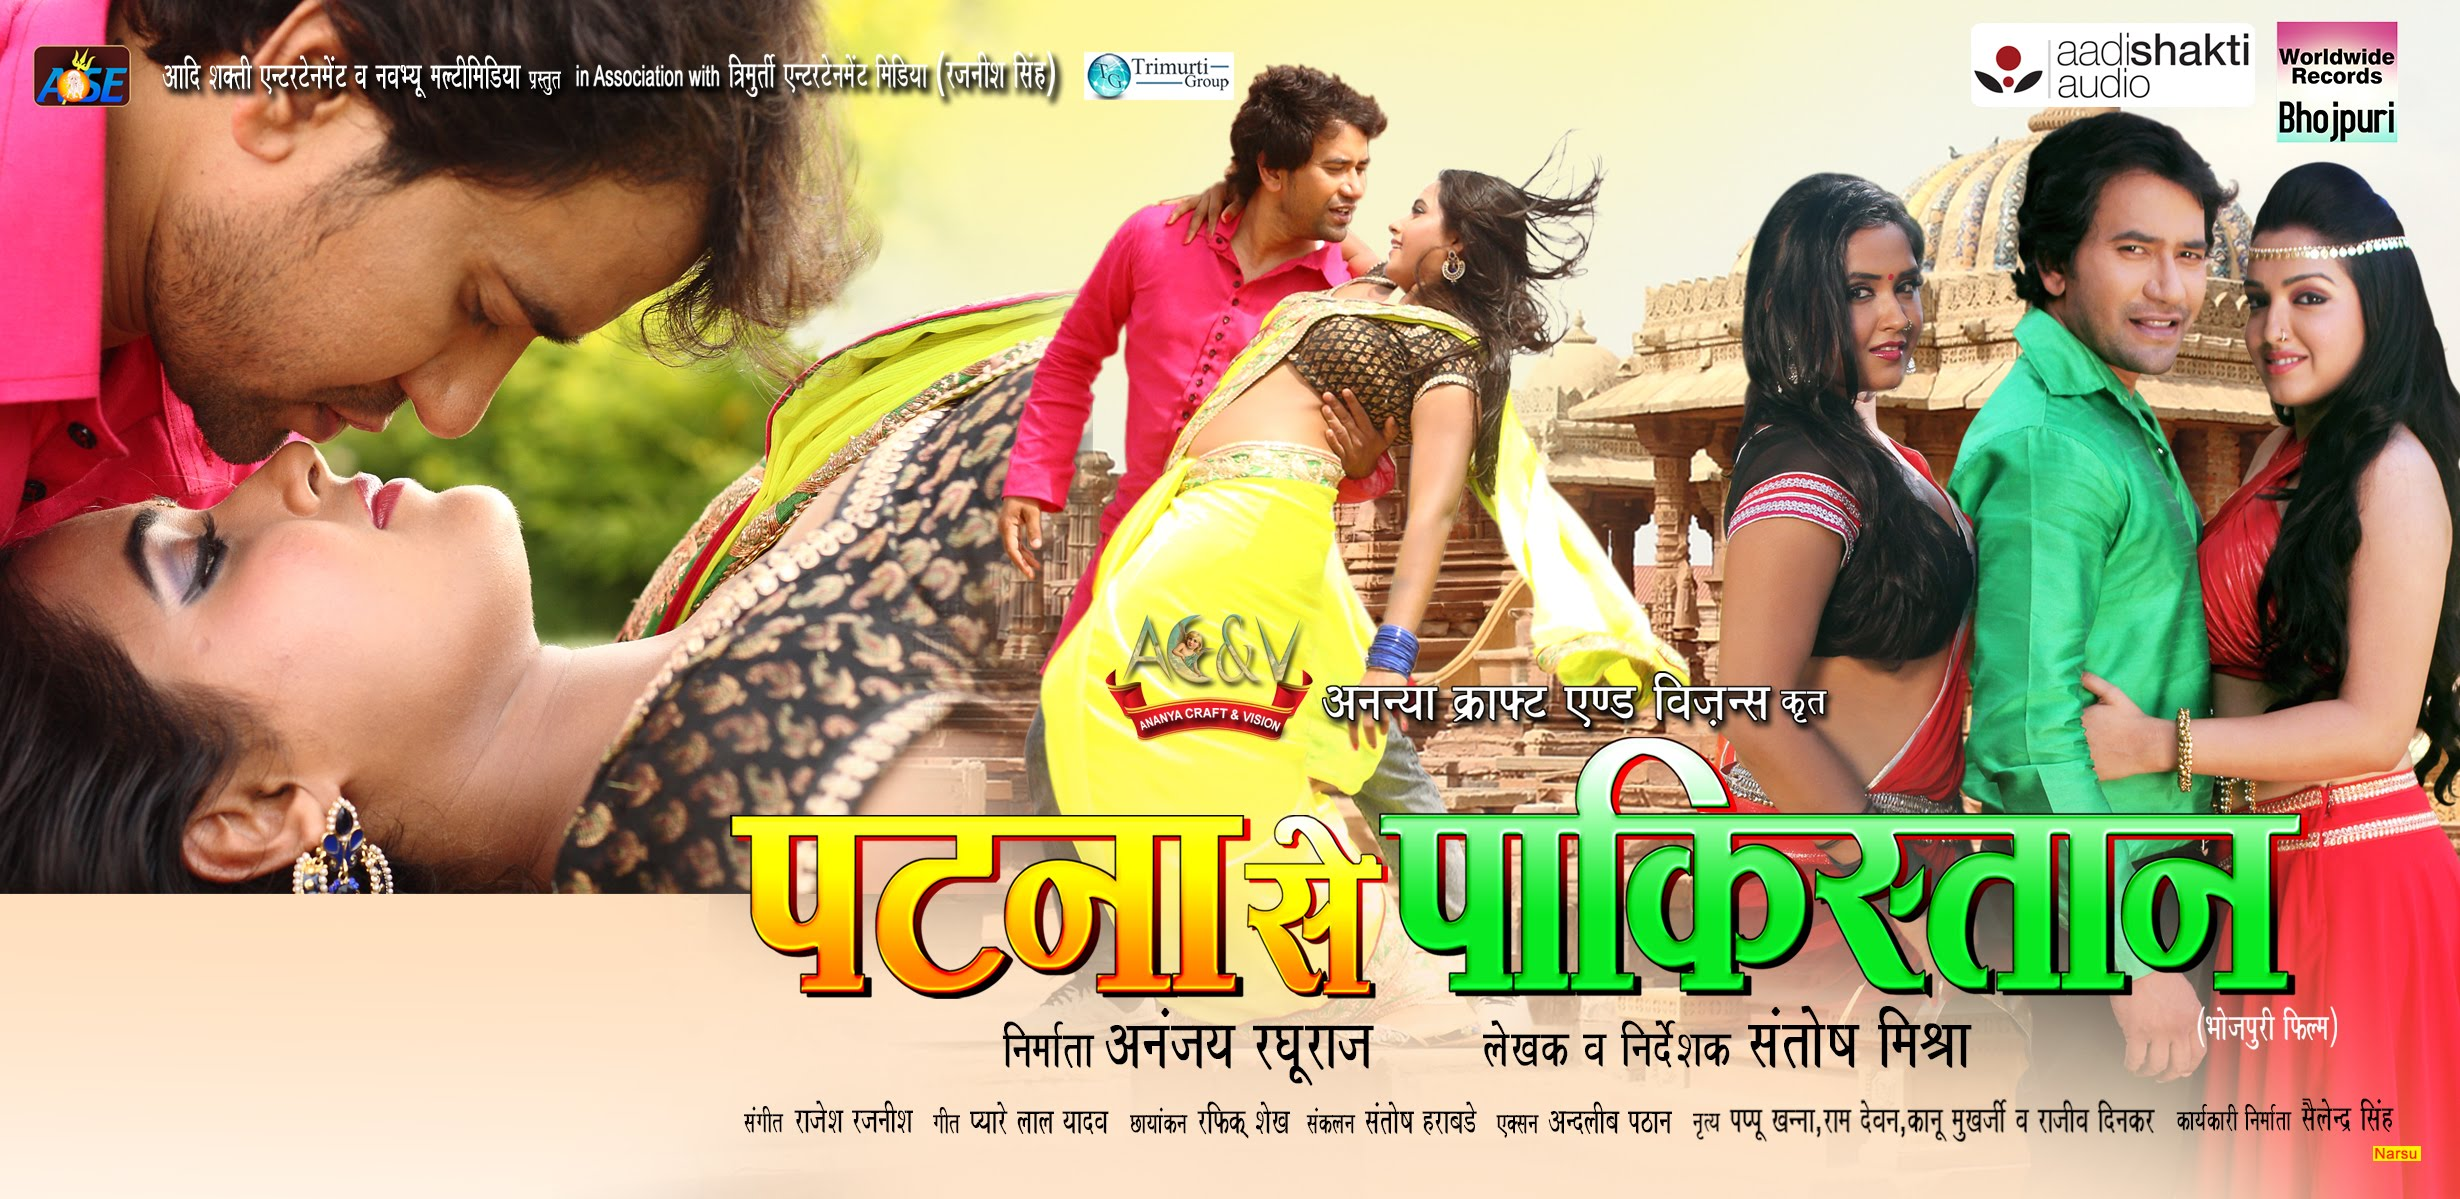 india pakistan bhojpuri movies download